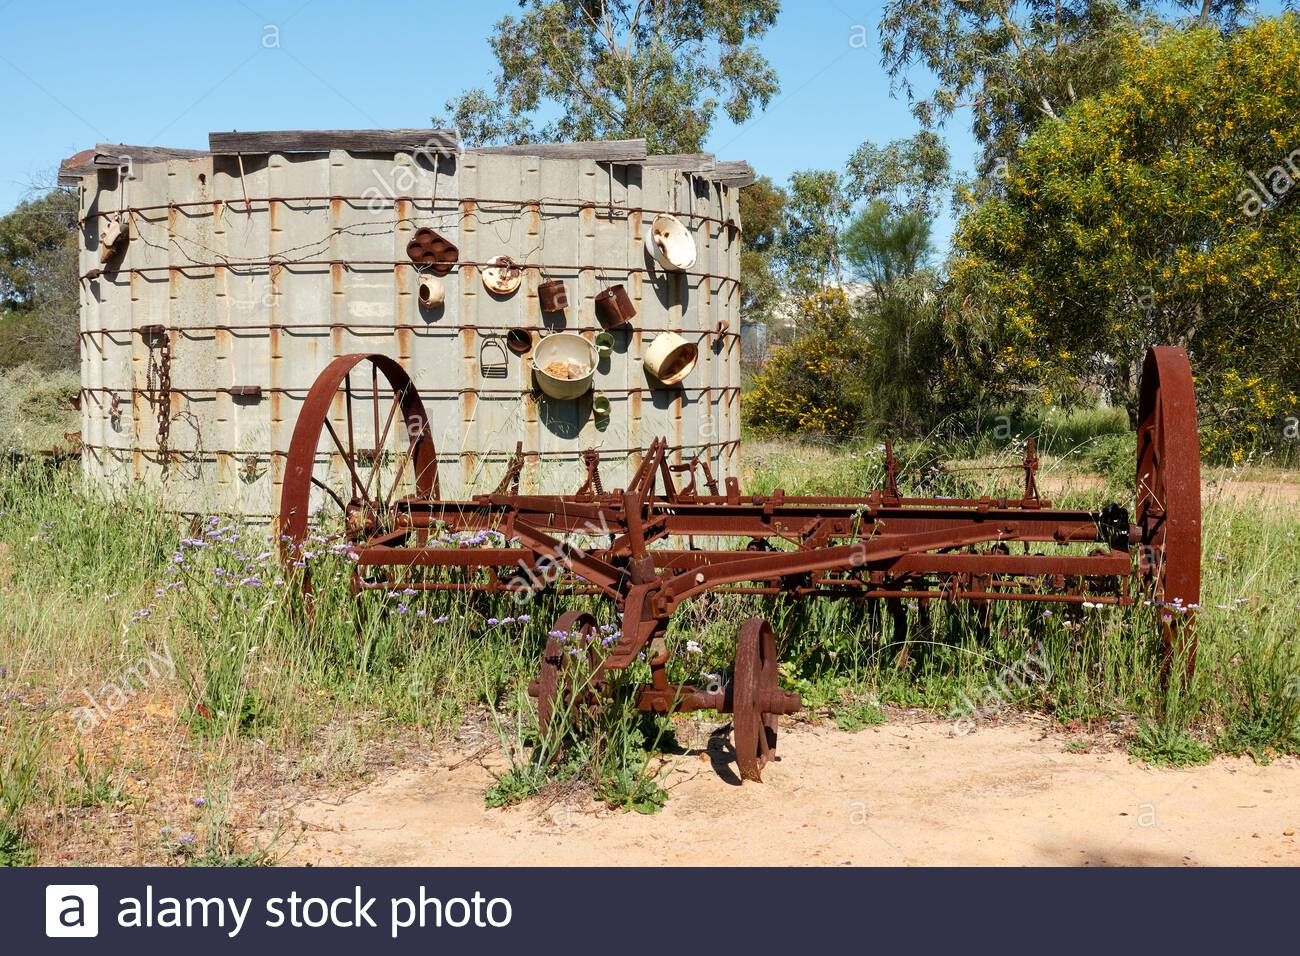 old-farm-machinery-and-rusted-pots-and-other-objects-attached-to-a-water-tank-at-the-base-of-mingenew-hill-in-the-town-of-mingenew-western-australia-2CTAC0Y.jpg